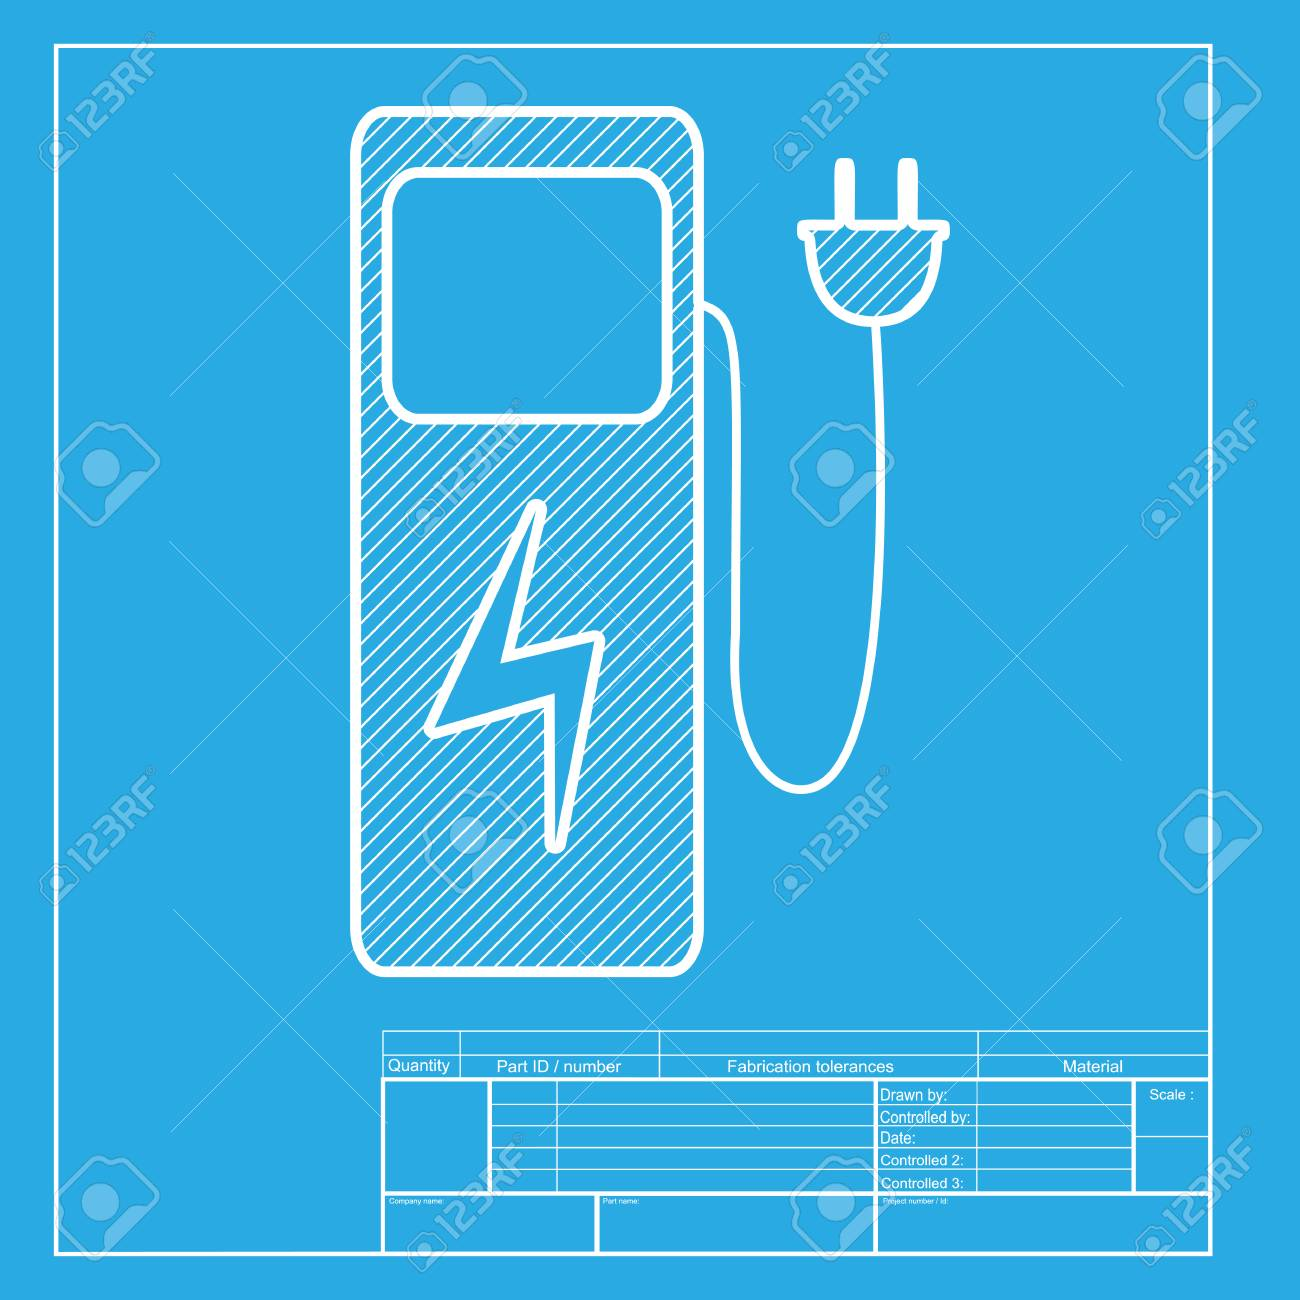 Electric car charging station sign white section of icon on electric car charging station sign white section of icon on blueprint template stock vector malvernweather Images